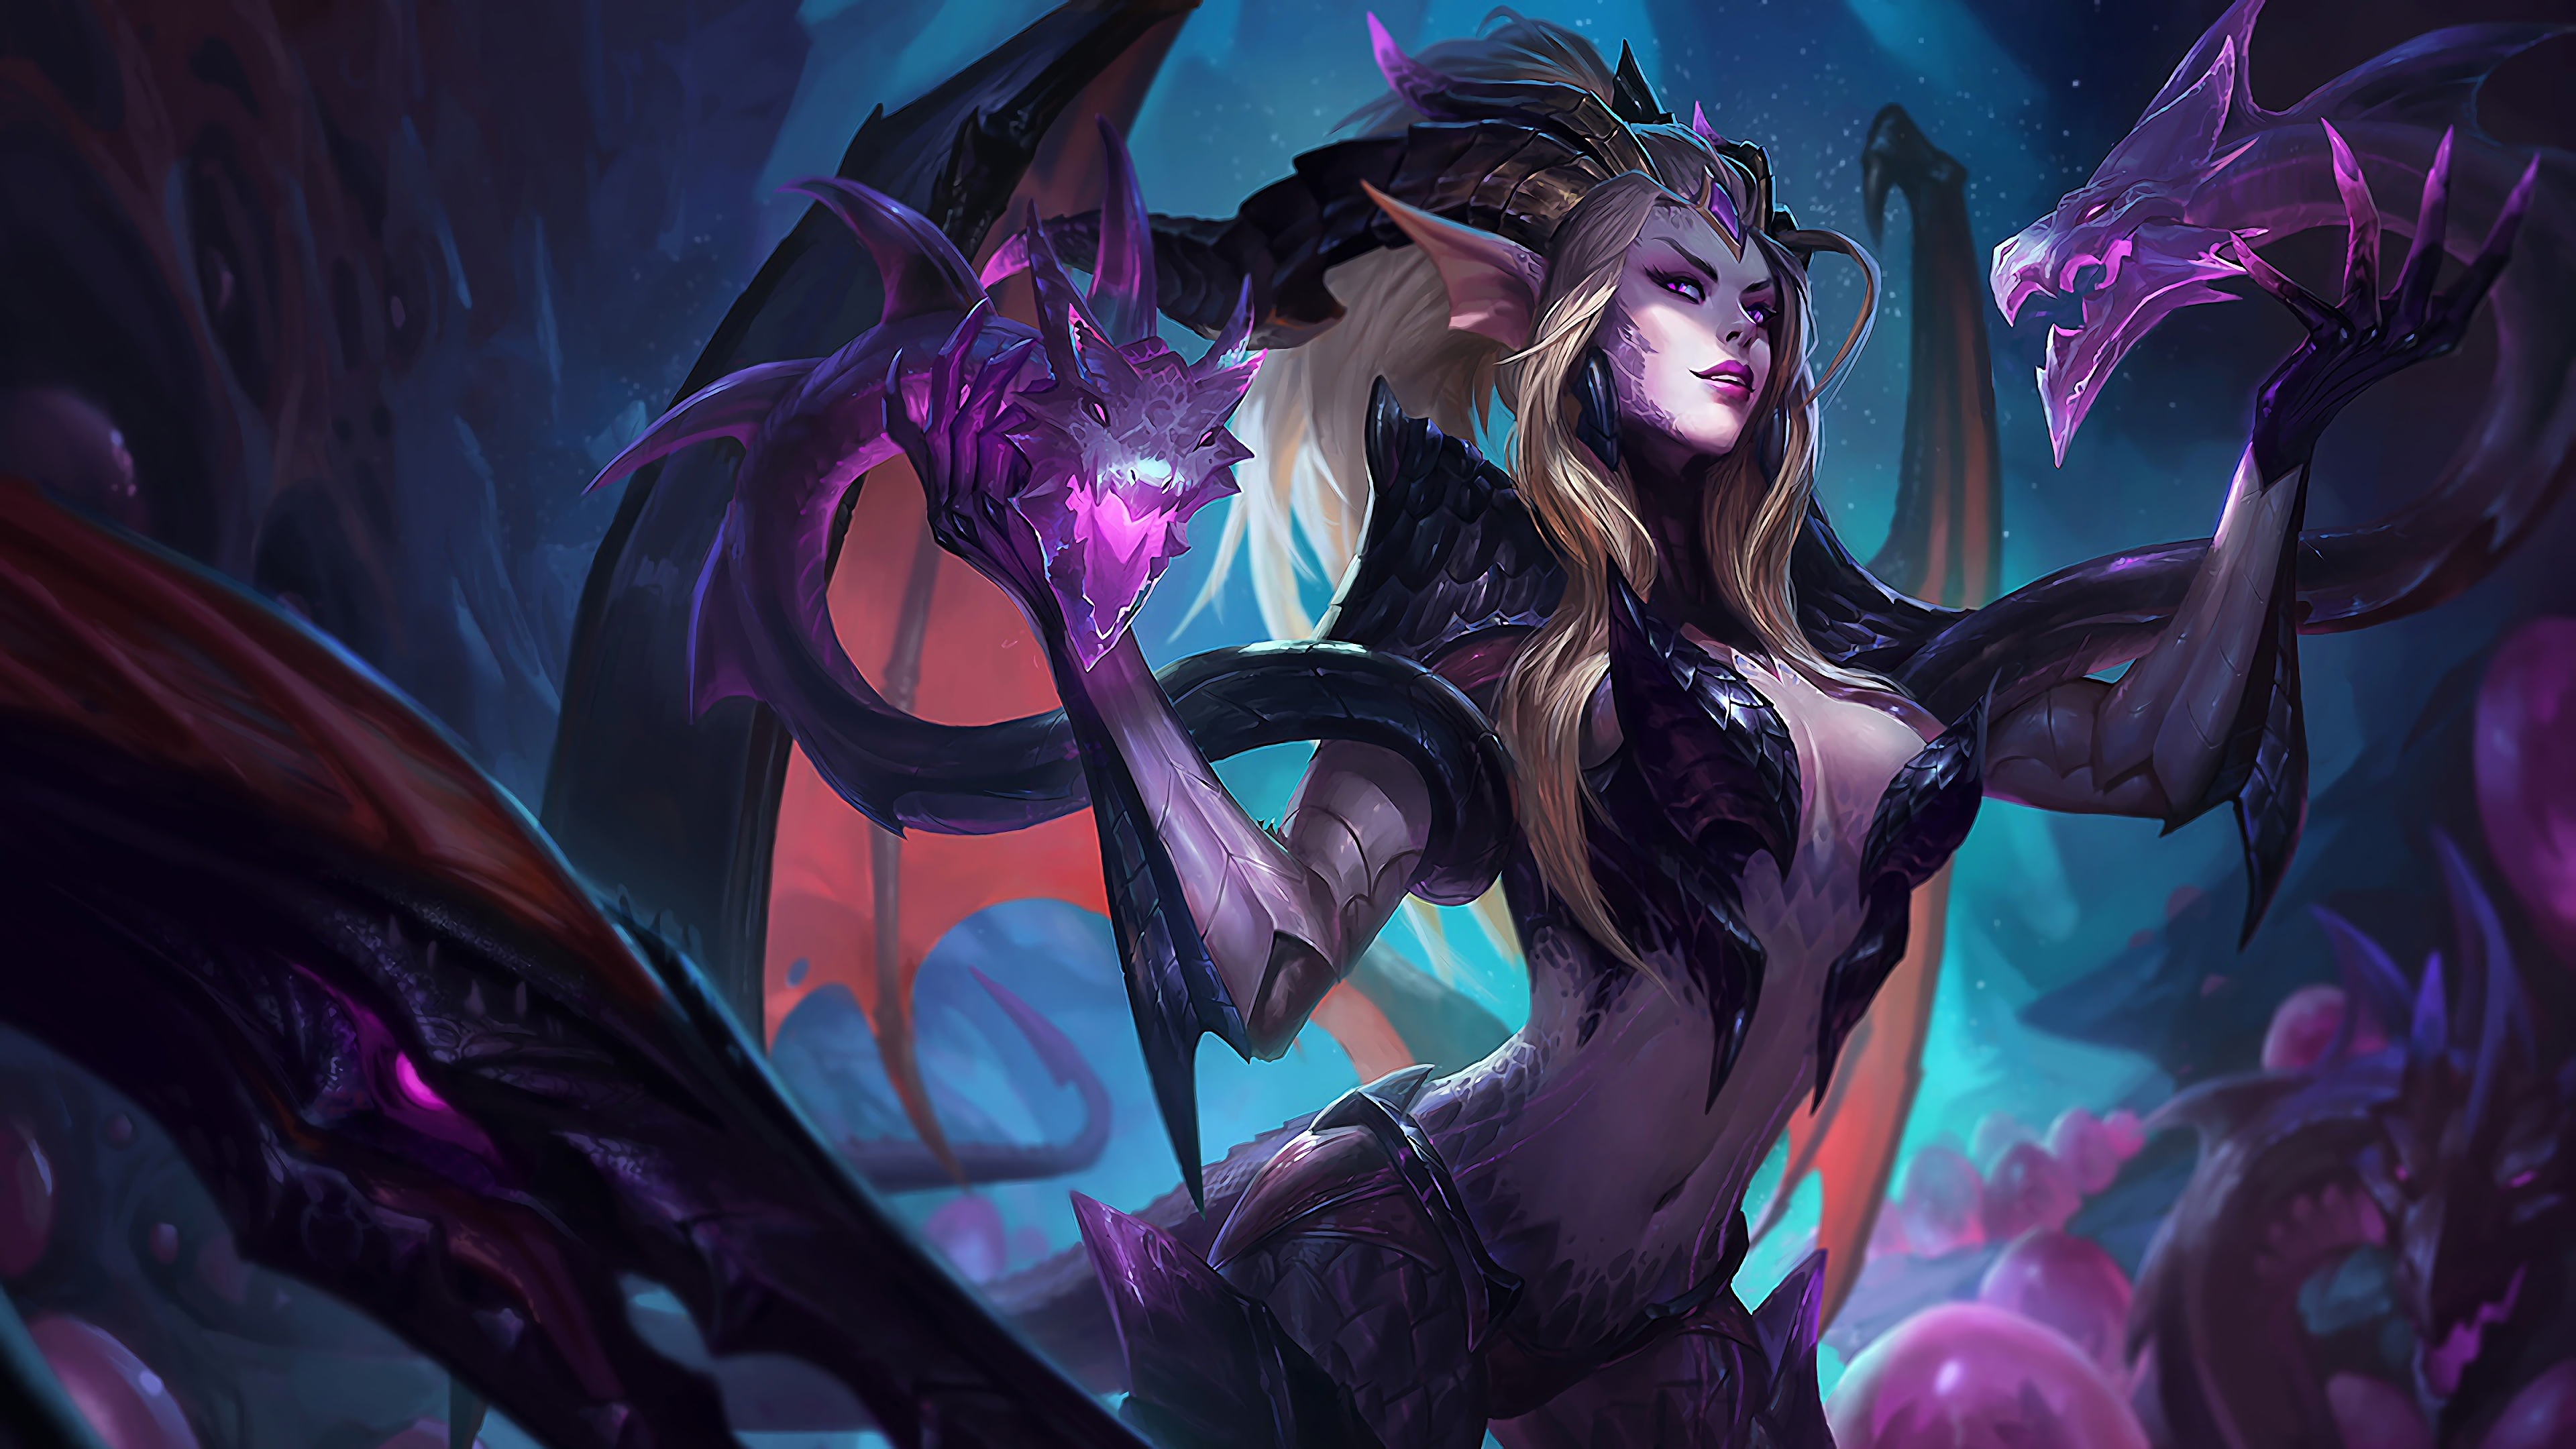 dragon sorceress zyra lol splash art league of legends 1574097830 - Dragon Sorceress Zyra LoL Splash Art League of Legends - Zyra, league of legends